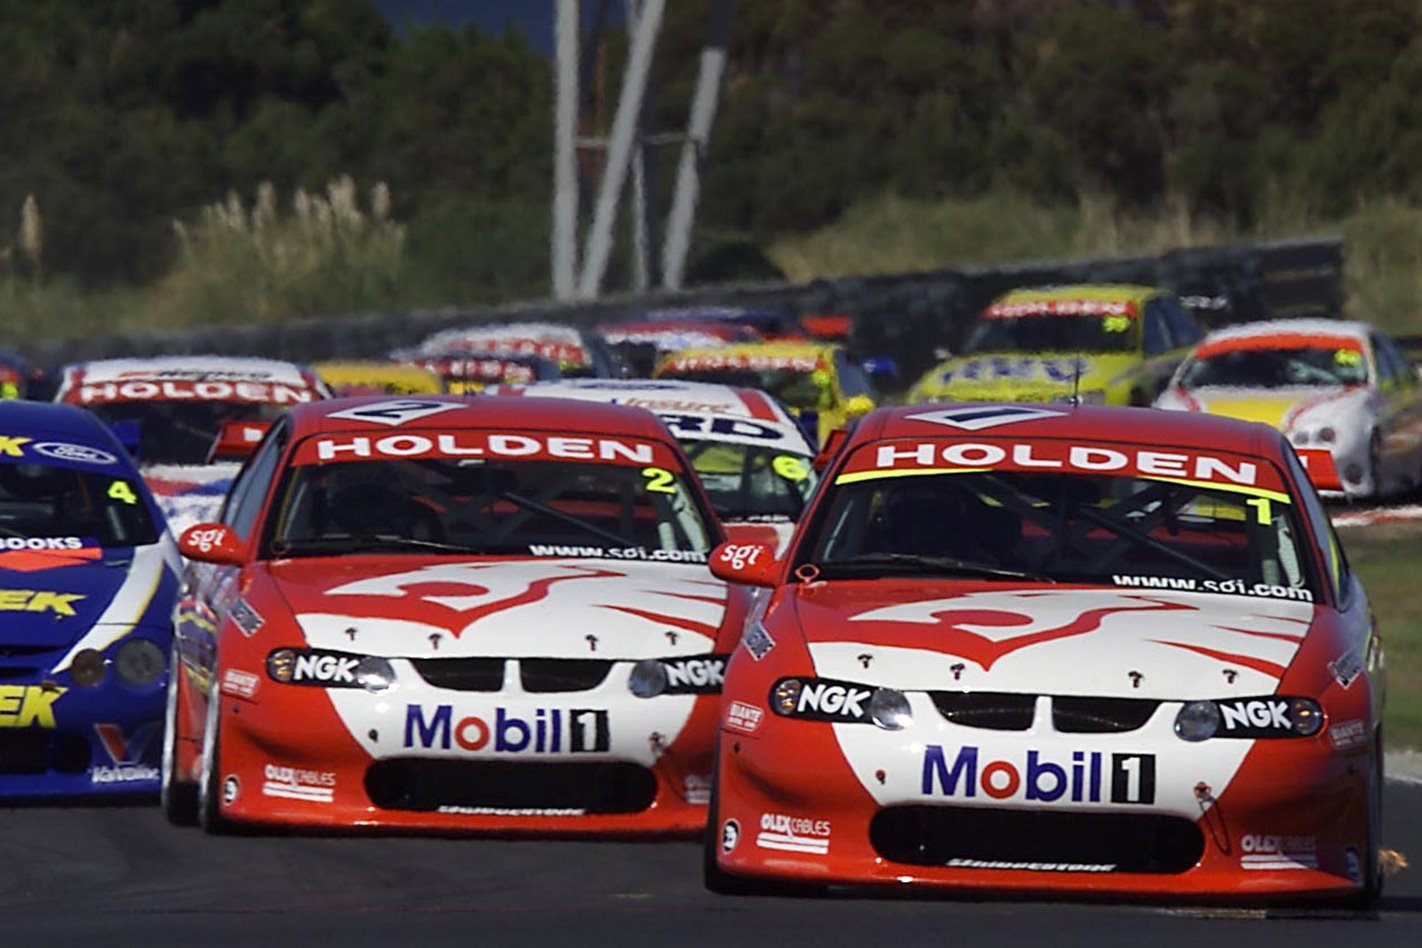 V8 Supercars Holden VE Commodore